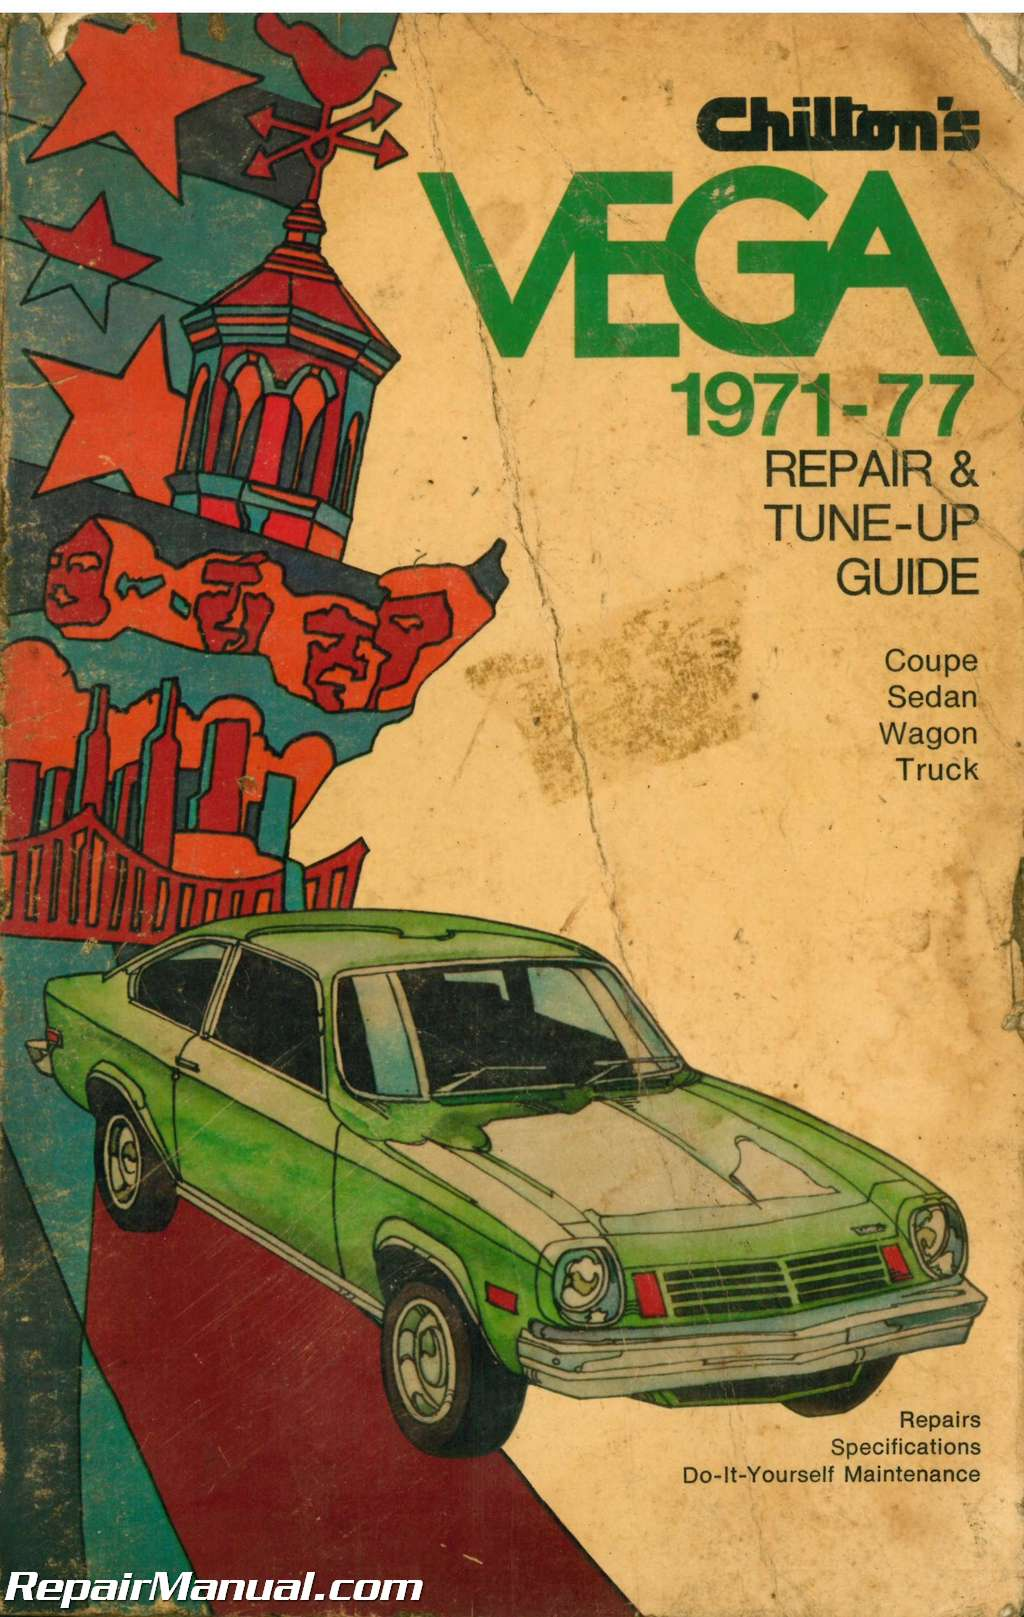 ... Array - used chilton vega repair and tune up guide manual 1971 1977 rh  repairmanual com